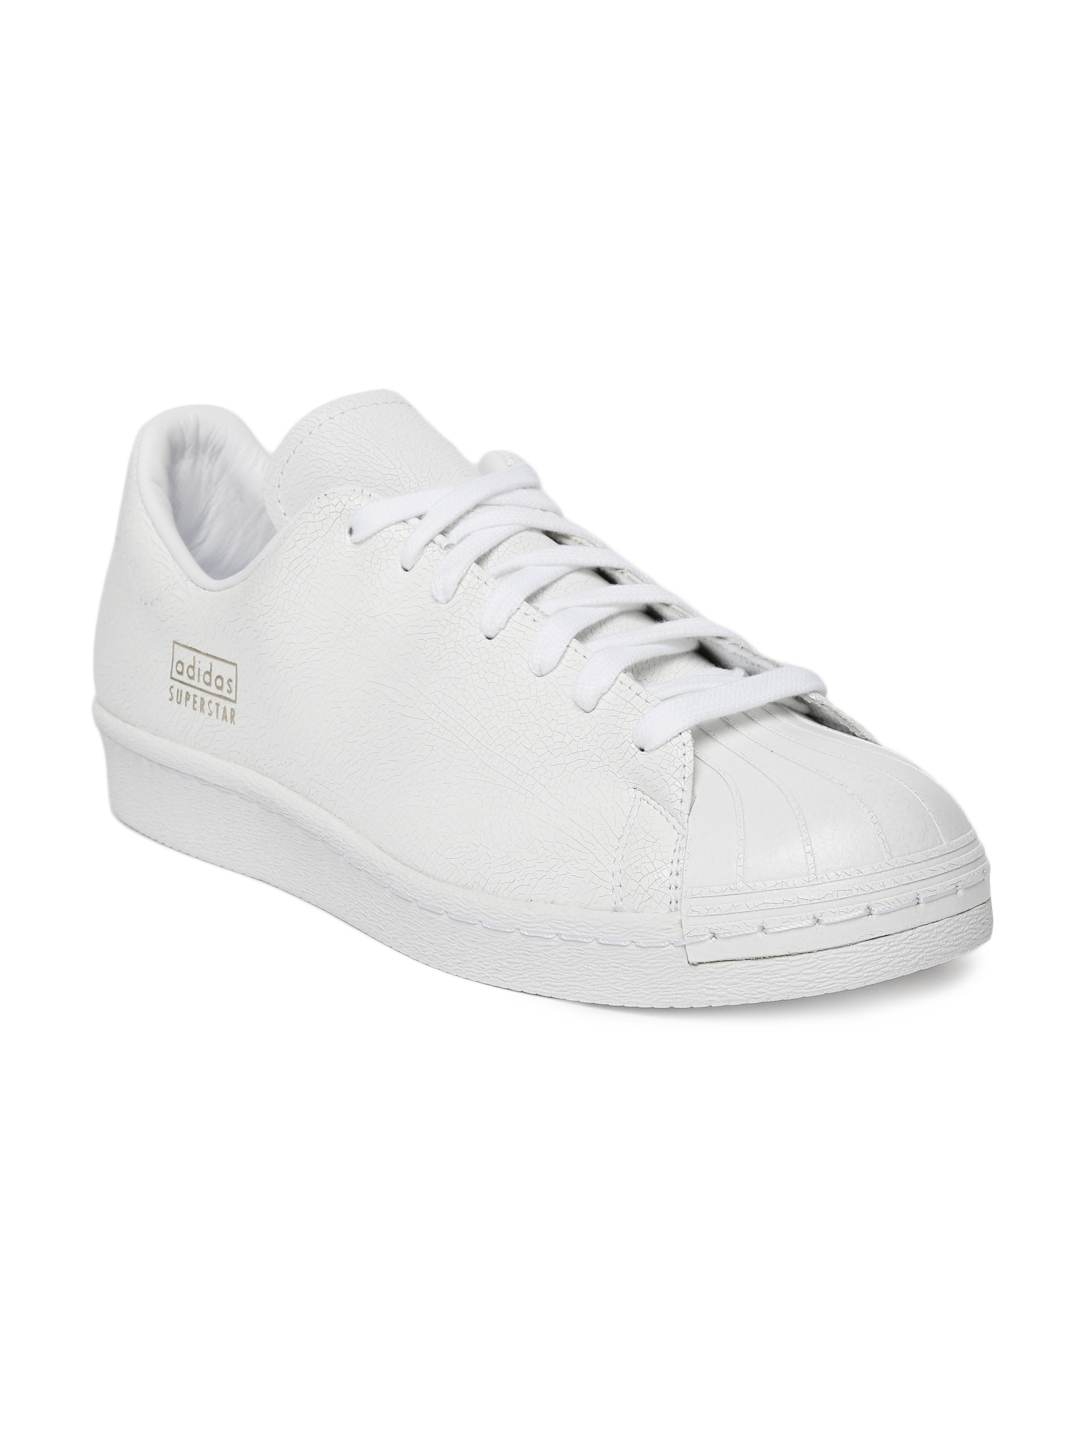 hot sale online 81501 e6cd9 ADIDAS Originals Men White SUPERSTAR 80S CLEAN Leather Sneakers